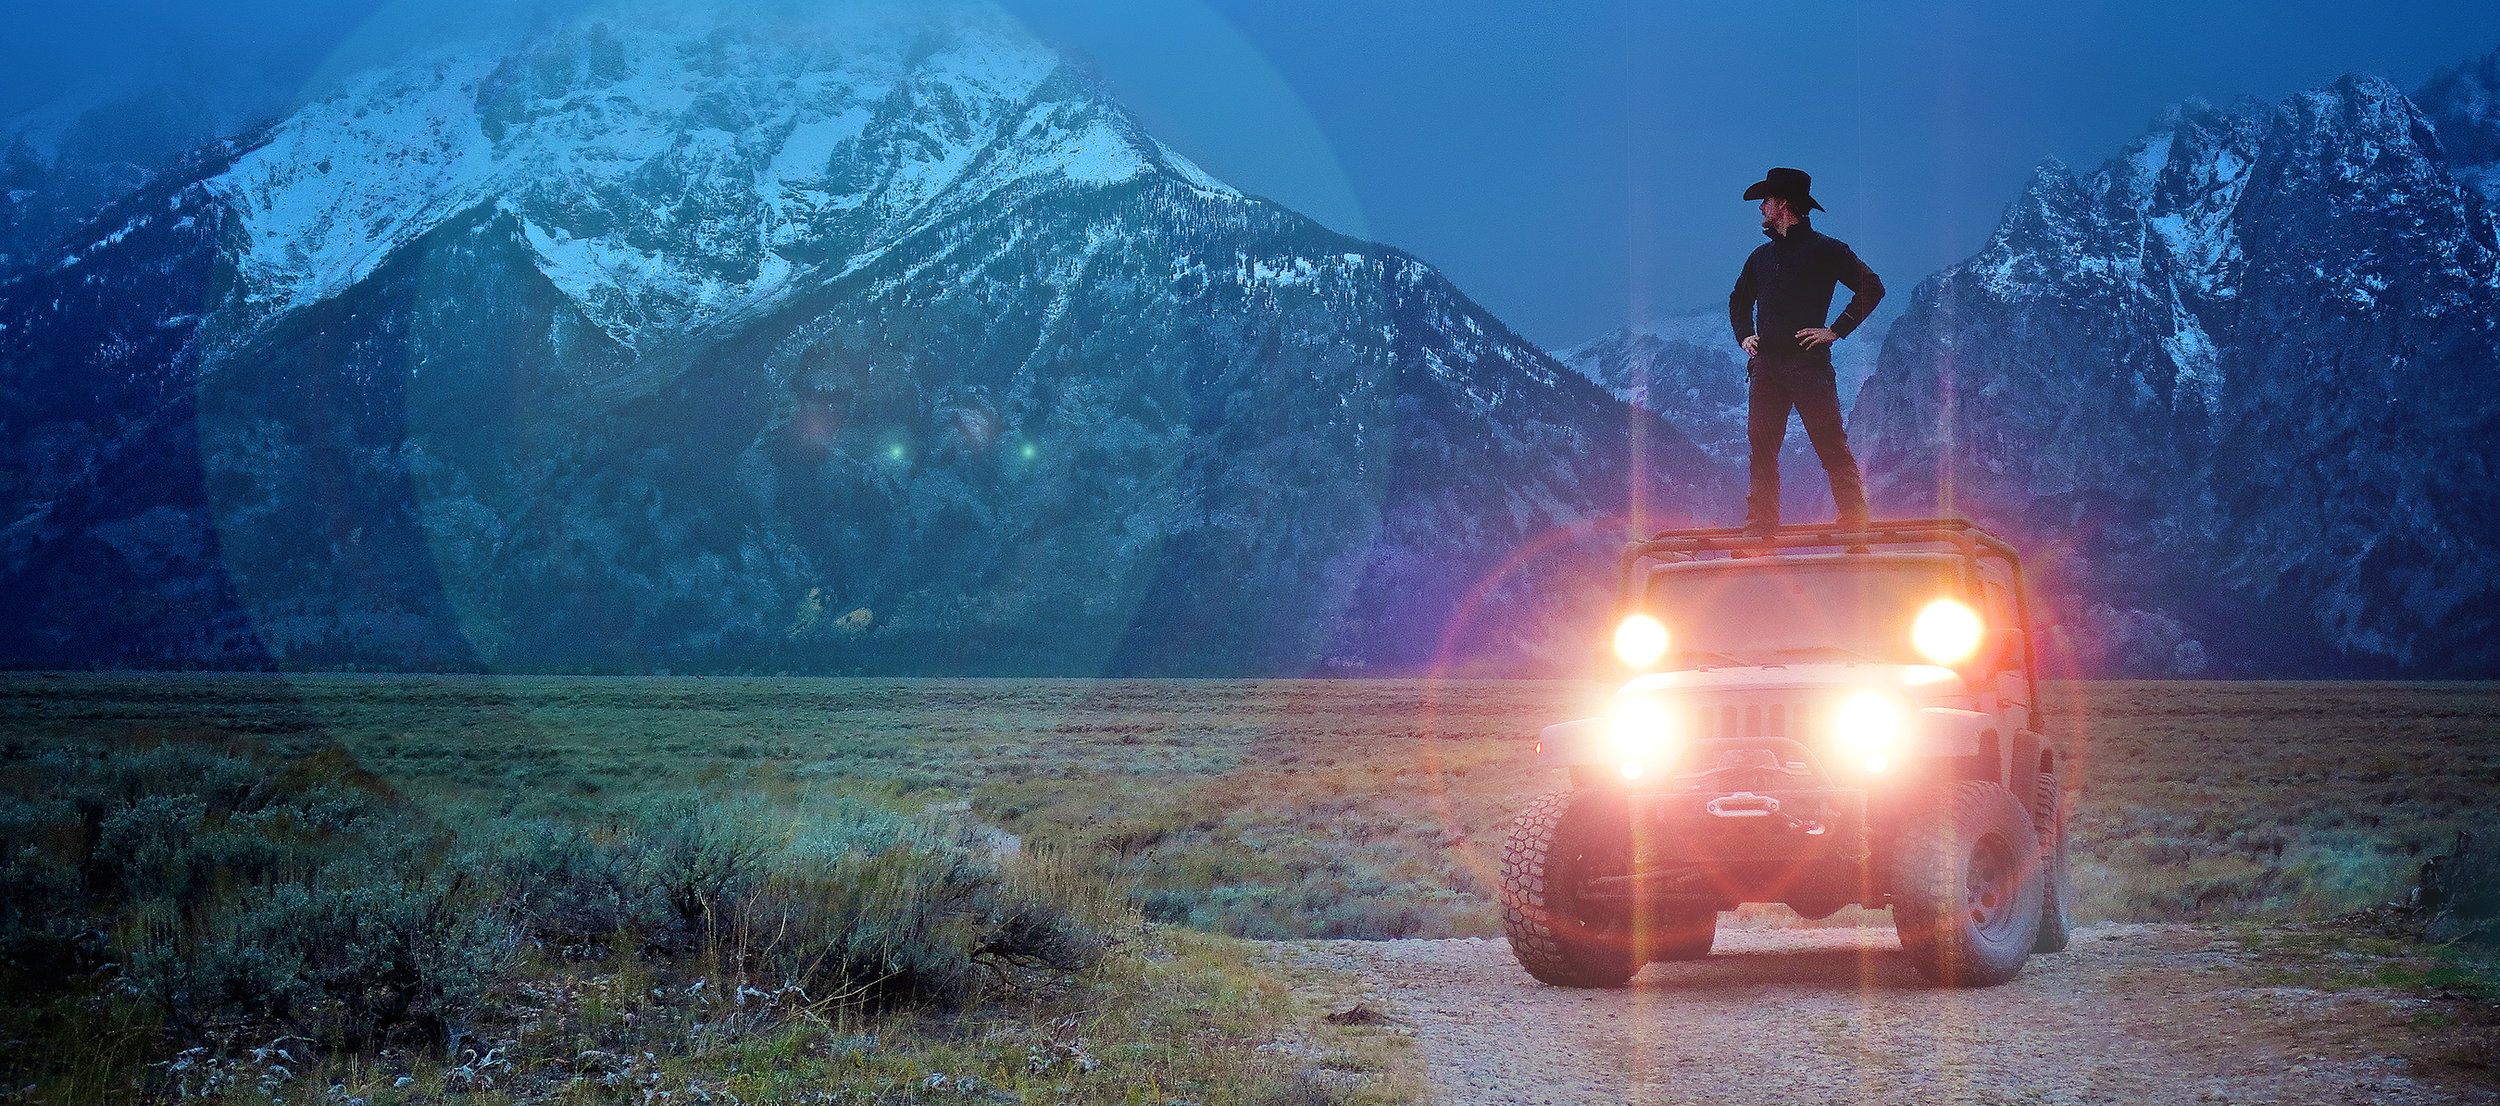 Founder, Dan Smarg the summer he conceived of FotoGenie while flyfishing in the Grand Tetons, Wyoming.